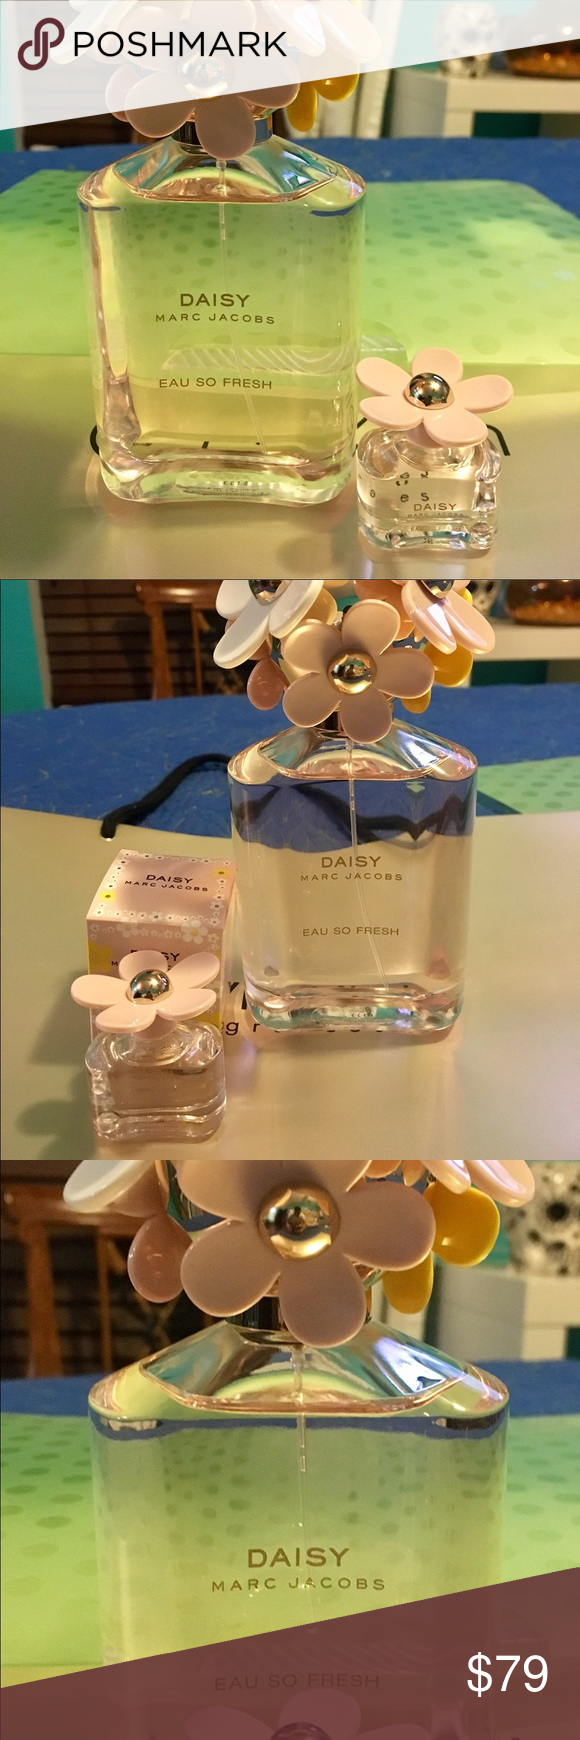 Marc jacobs So fresh perfume 4.25oz/.13oz BNWB!! Marc Jacobs so fresh perfume 4.25oz with mini .13oz brand new with out box (mini perfume with box)never used! marc  jacobs Other